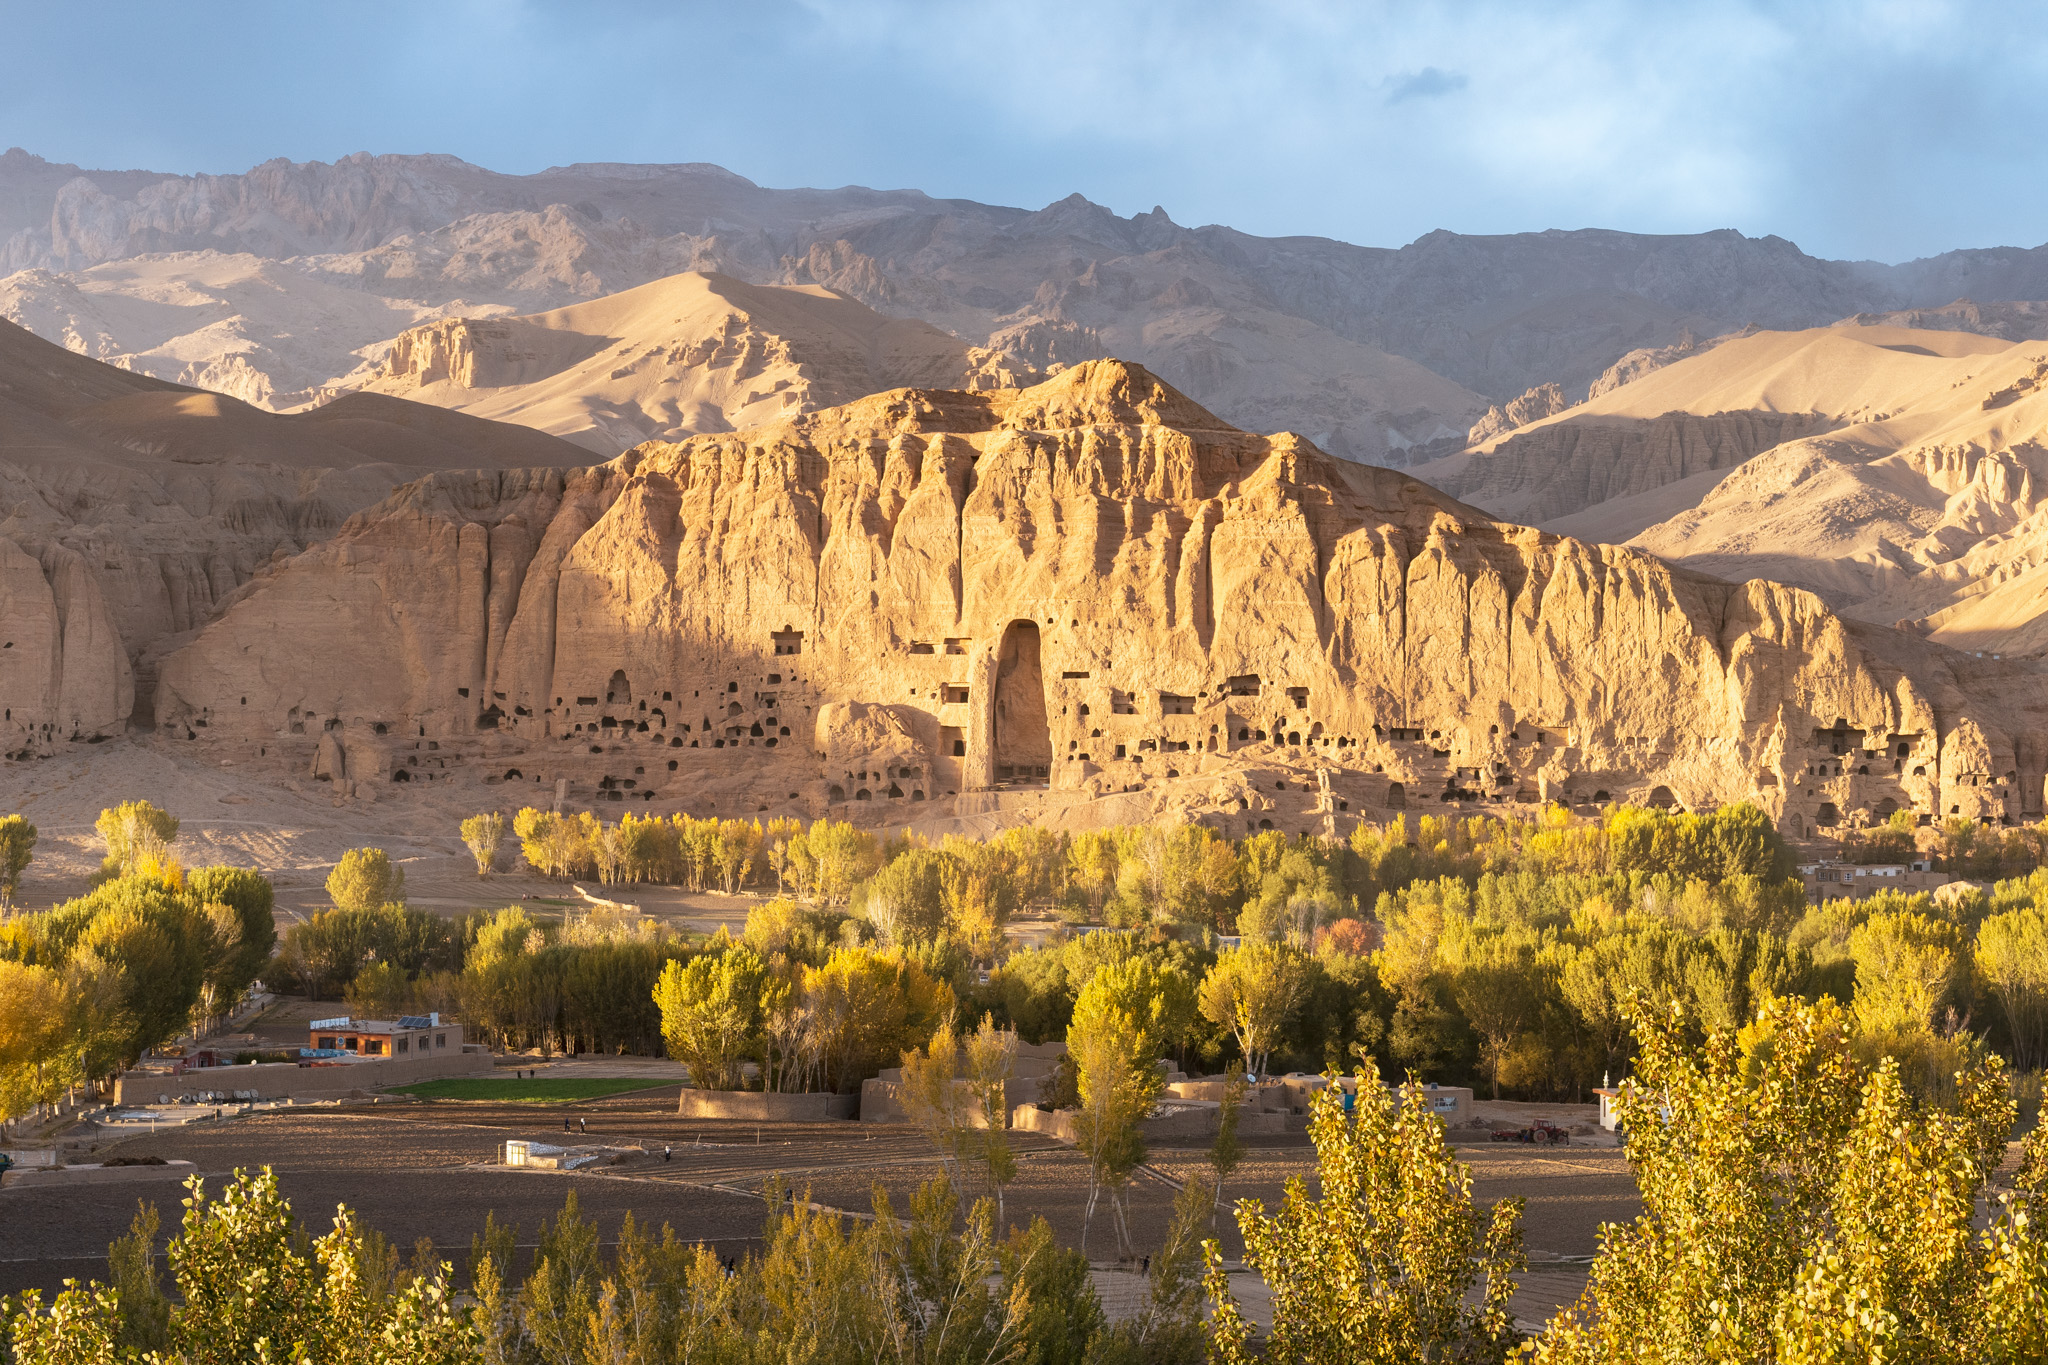 Gorgeous sunset over the Buddhas of Bamiyan